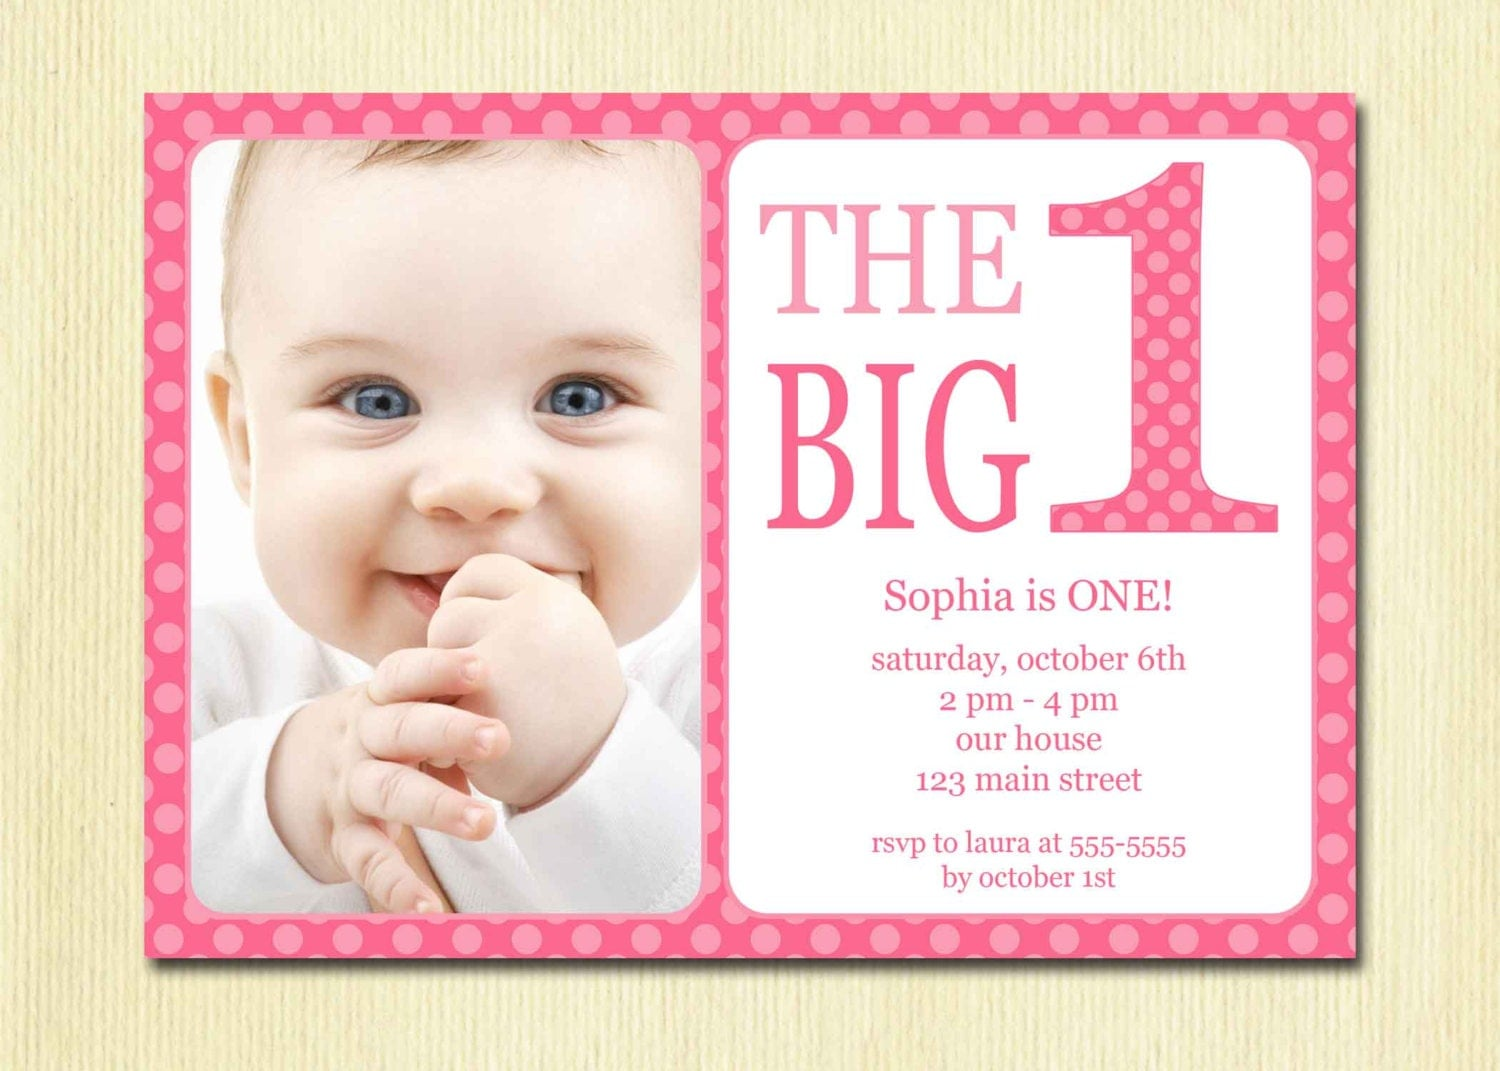 1St Birthday Invites and get inspiration to create nice invitation ideas